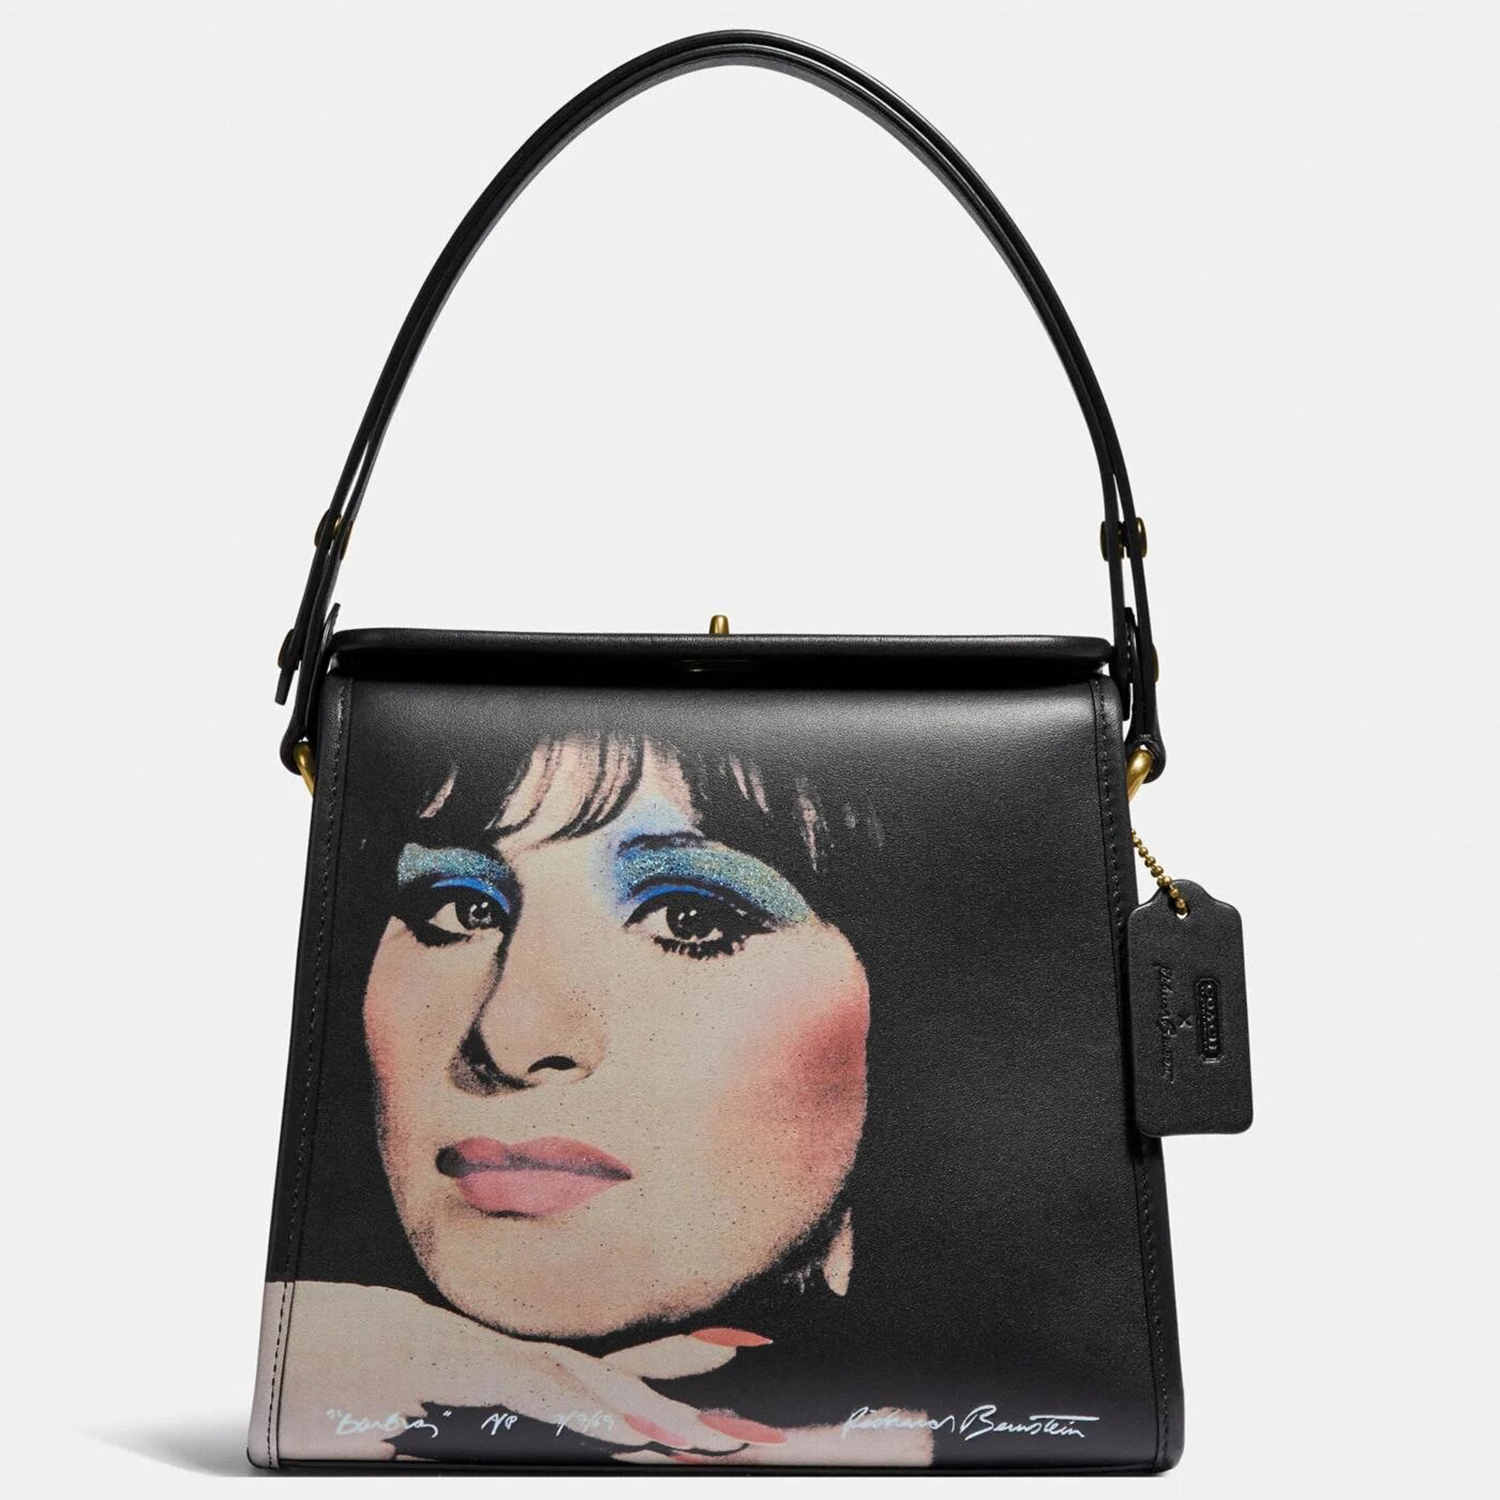 COACH X Richard Bernstein Turnlock Shoulder Bag Barbra Streisand